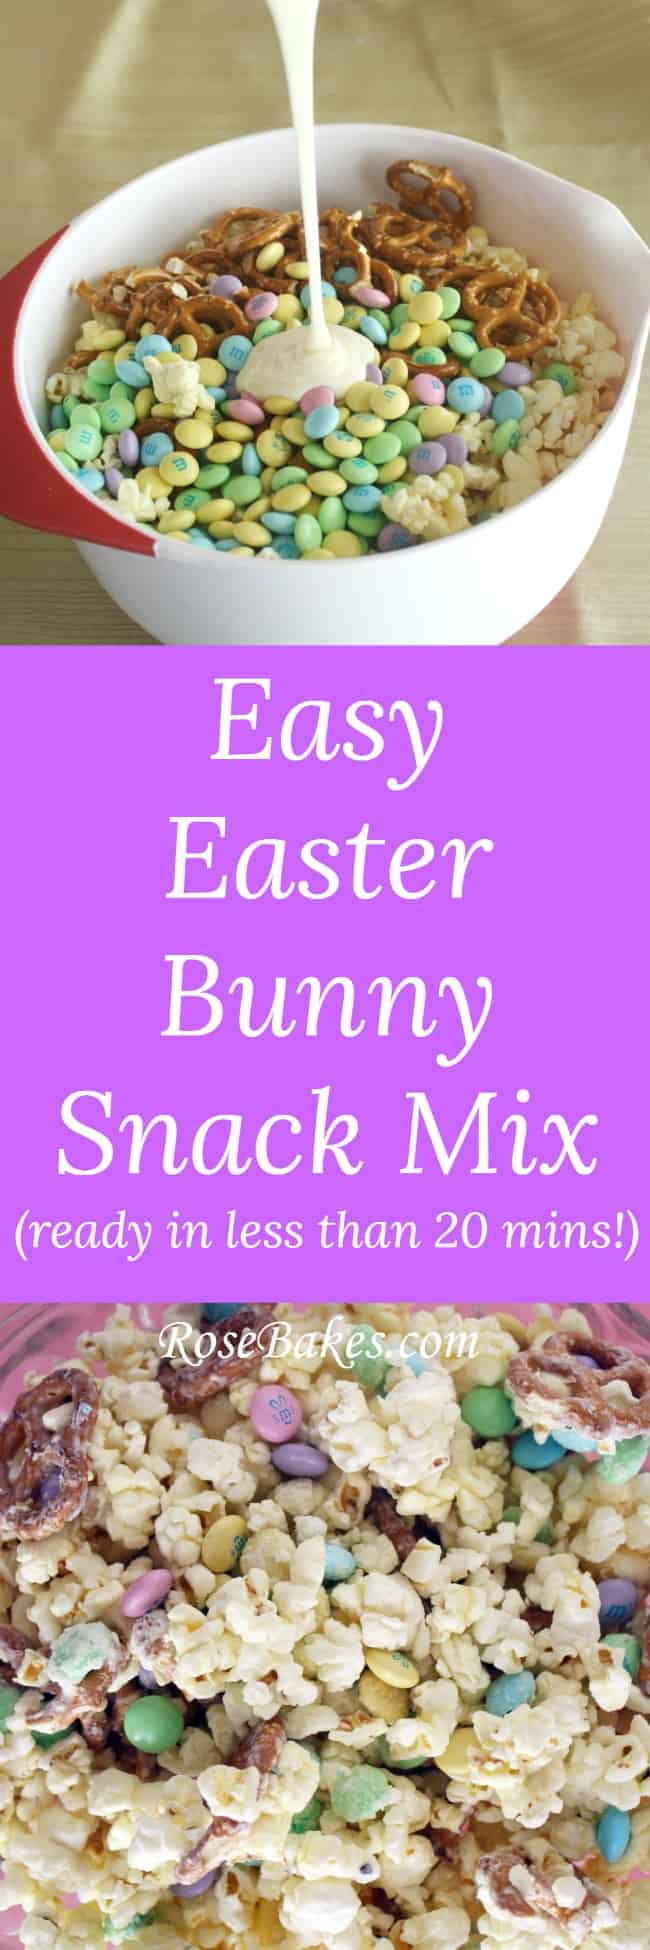 Easy Easter Bunny Snack Mix